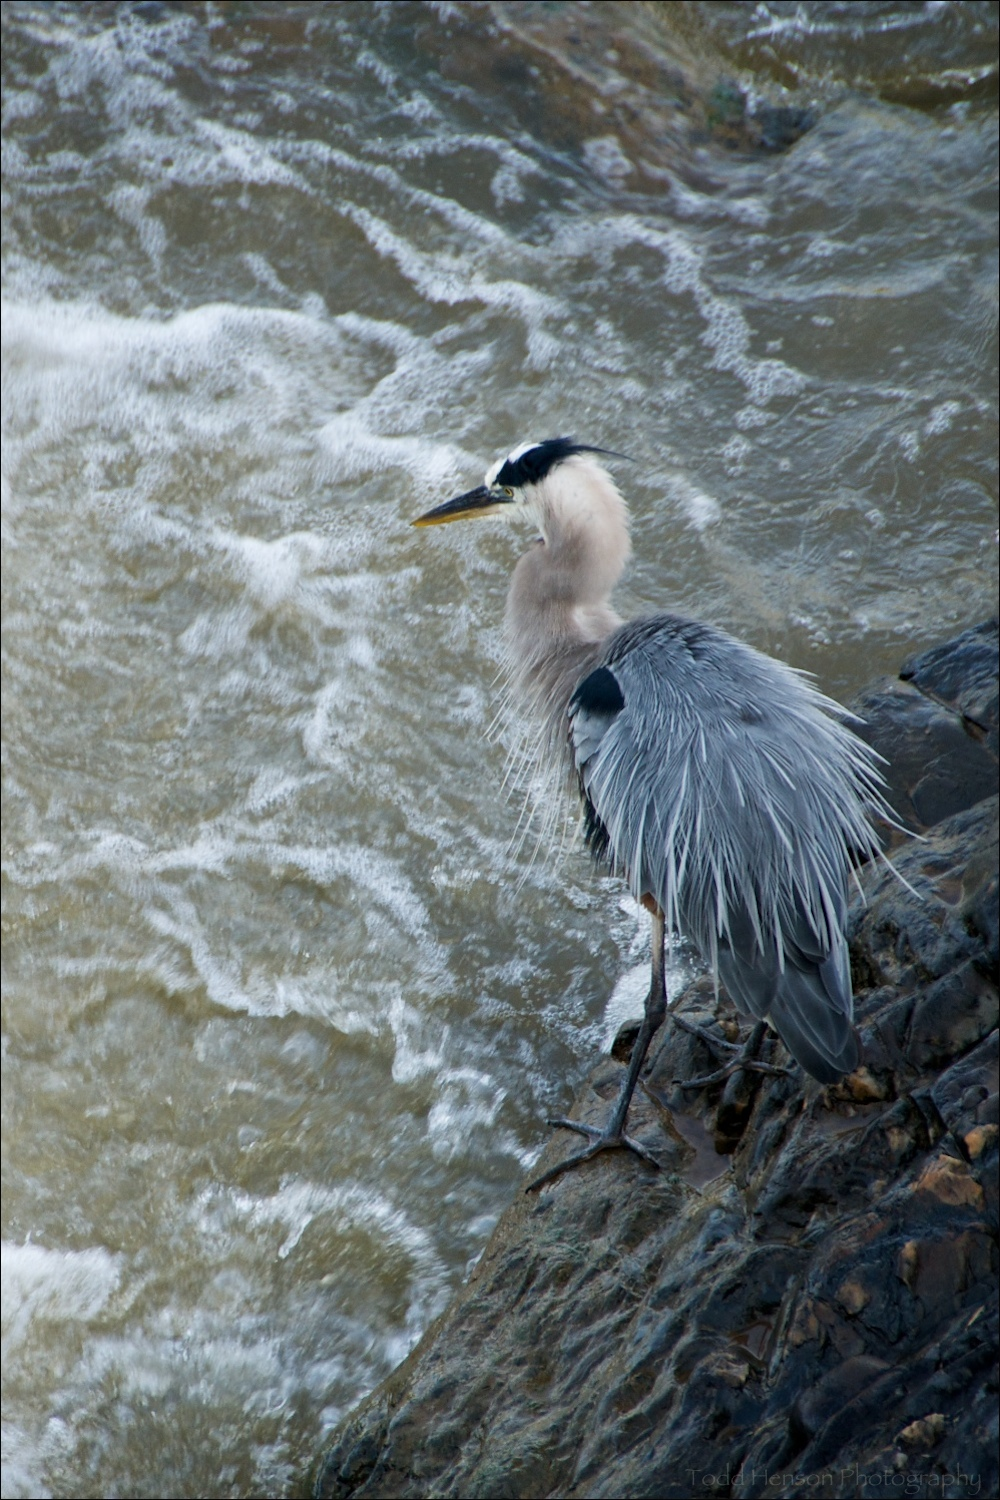 Great Blue Heron ruffling feathers and puffing out plumage